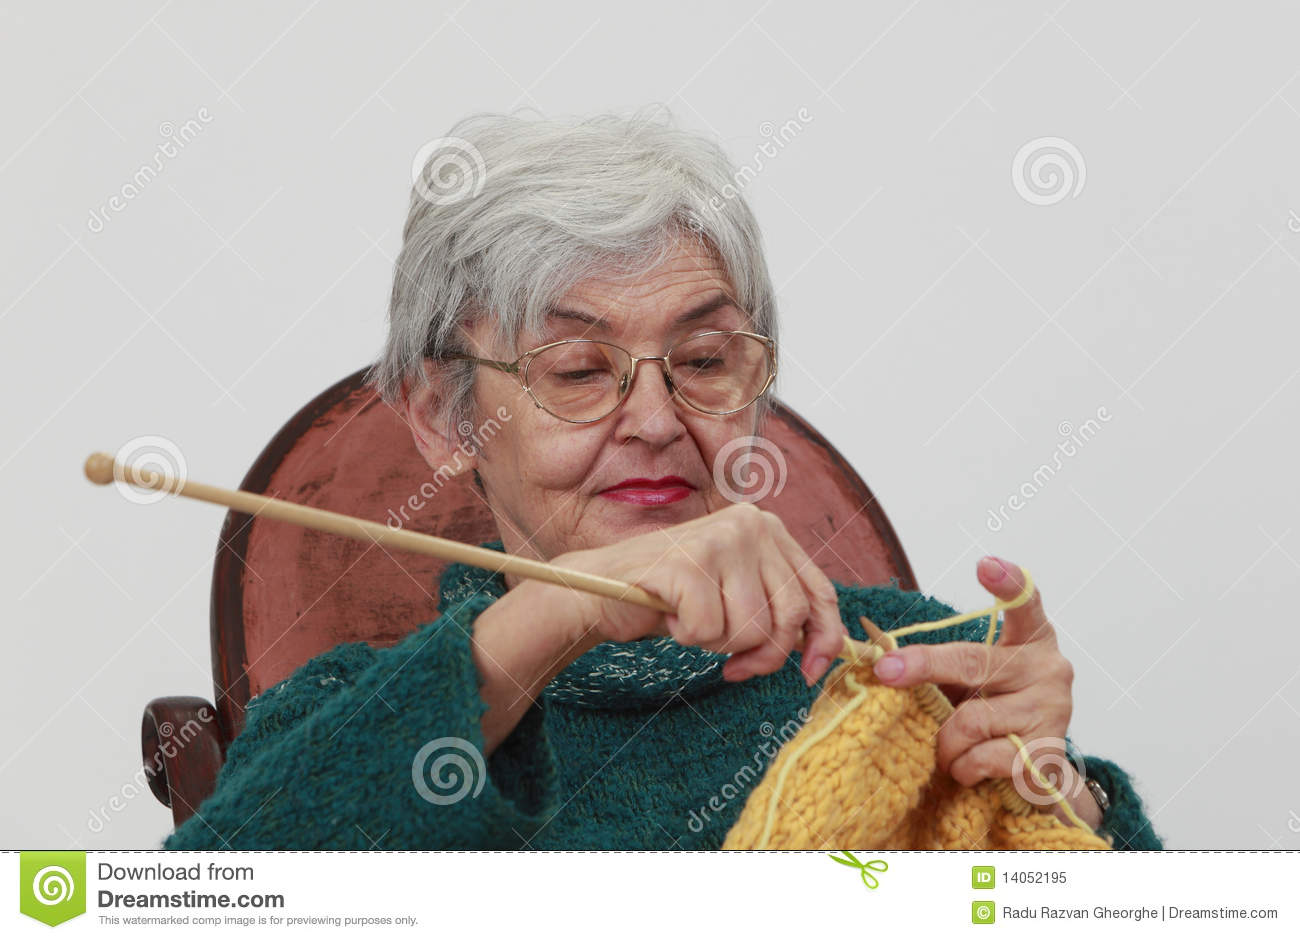 Old Lady Knitting Images : Old woman knitting royalty free stock photo image